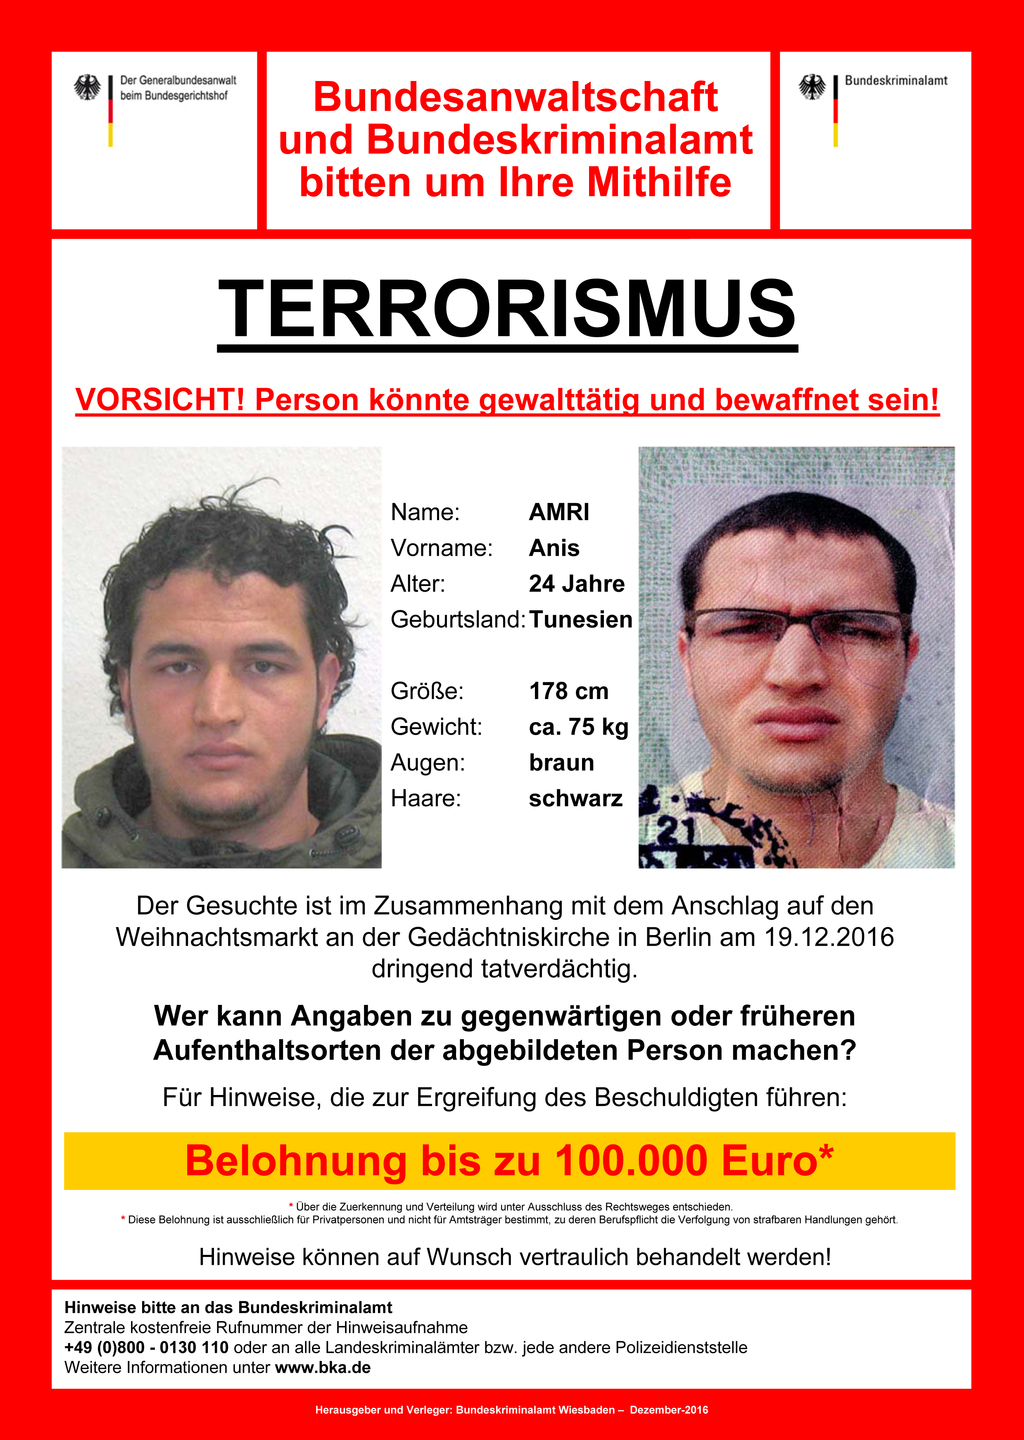 The wanted poster issued by German federal police on Wednesday, Dec. 21, 2016 shows 24-year-old Tunisian Anis Amri who is suspected of ...